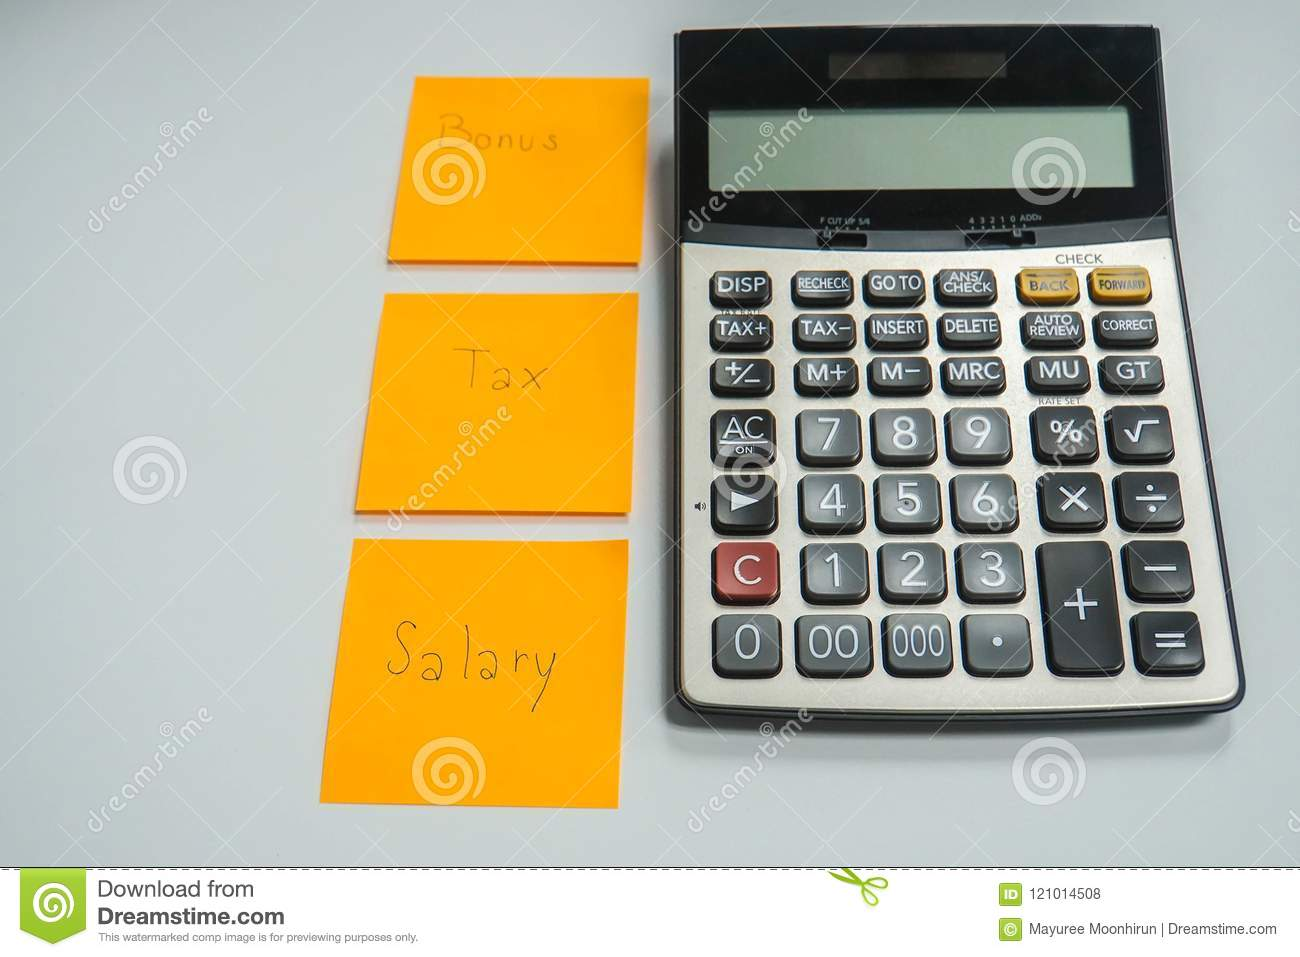 How to calculate annual salary (with salary calculators).